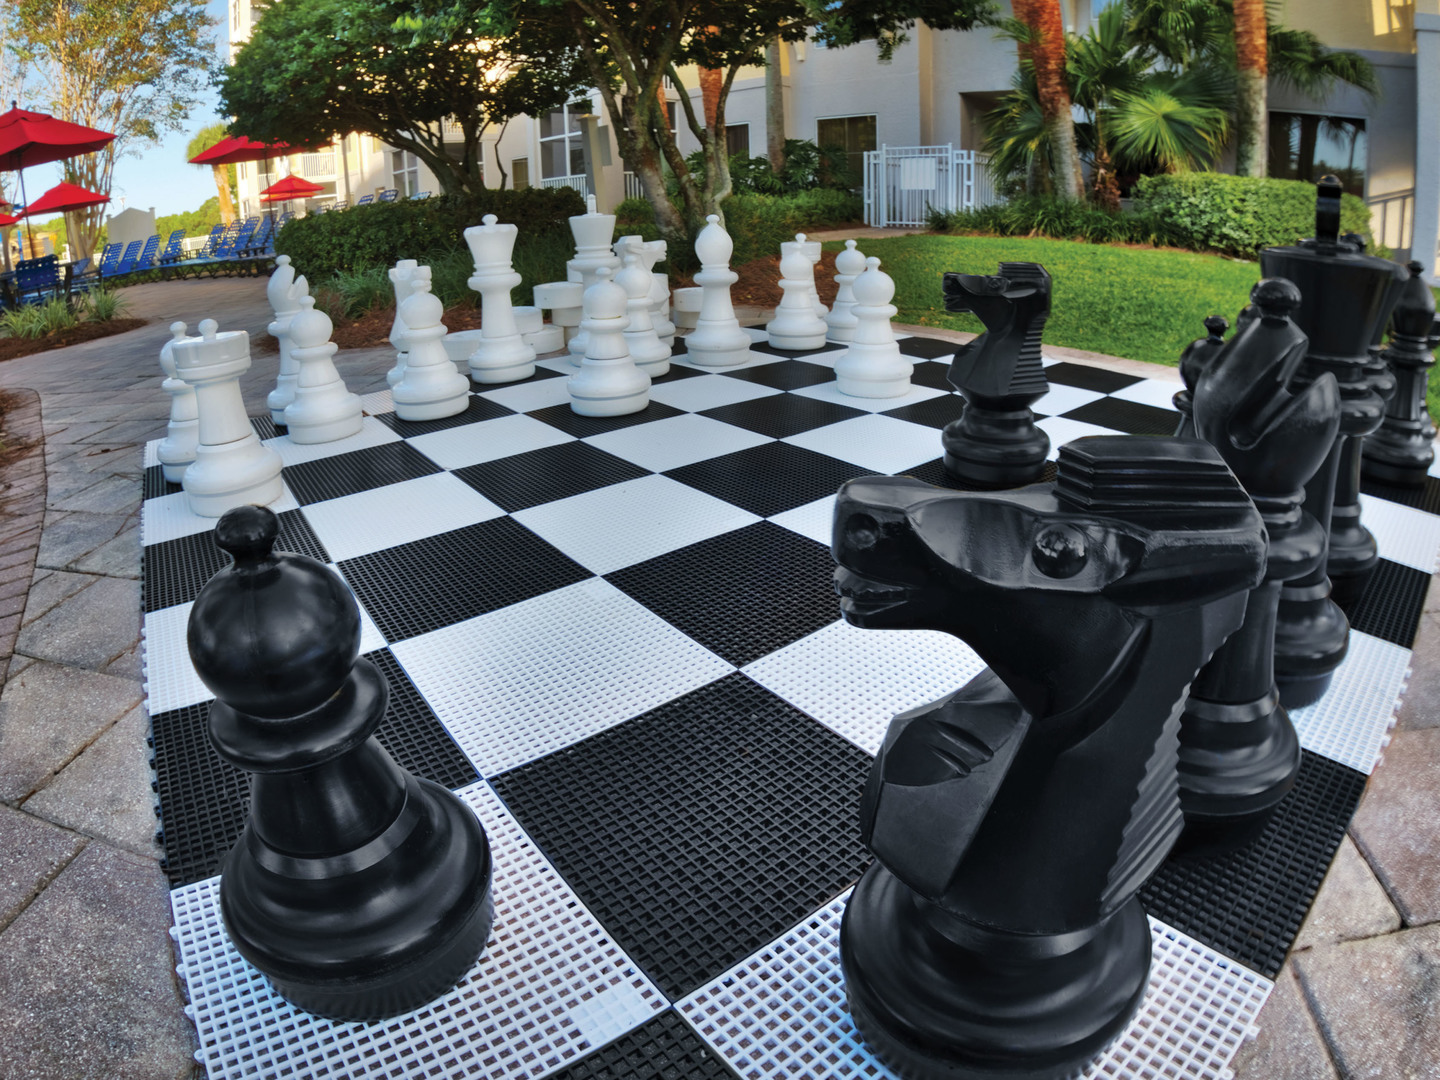 Marriott's Legends Edge at Bay Point Activities/Chess. Marriott's Legends Edge at Bay Point is located in Panama City, Florida United States.